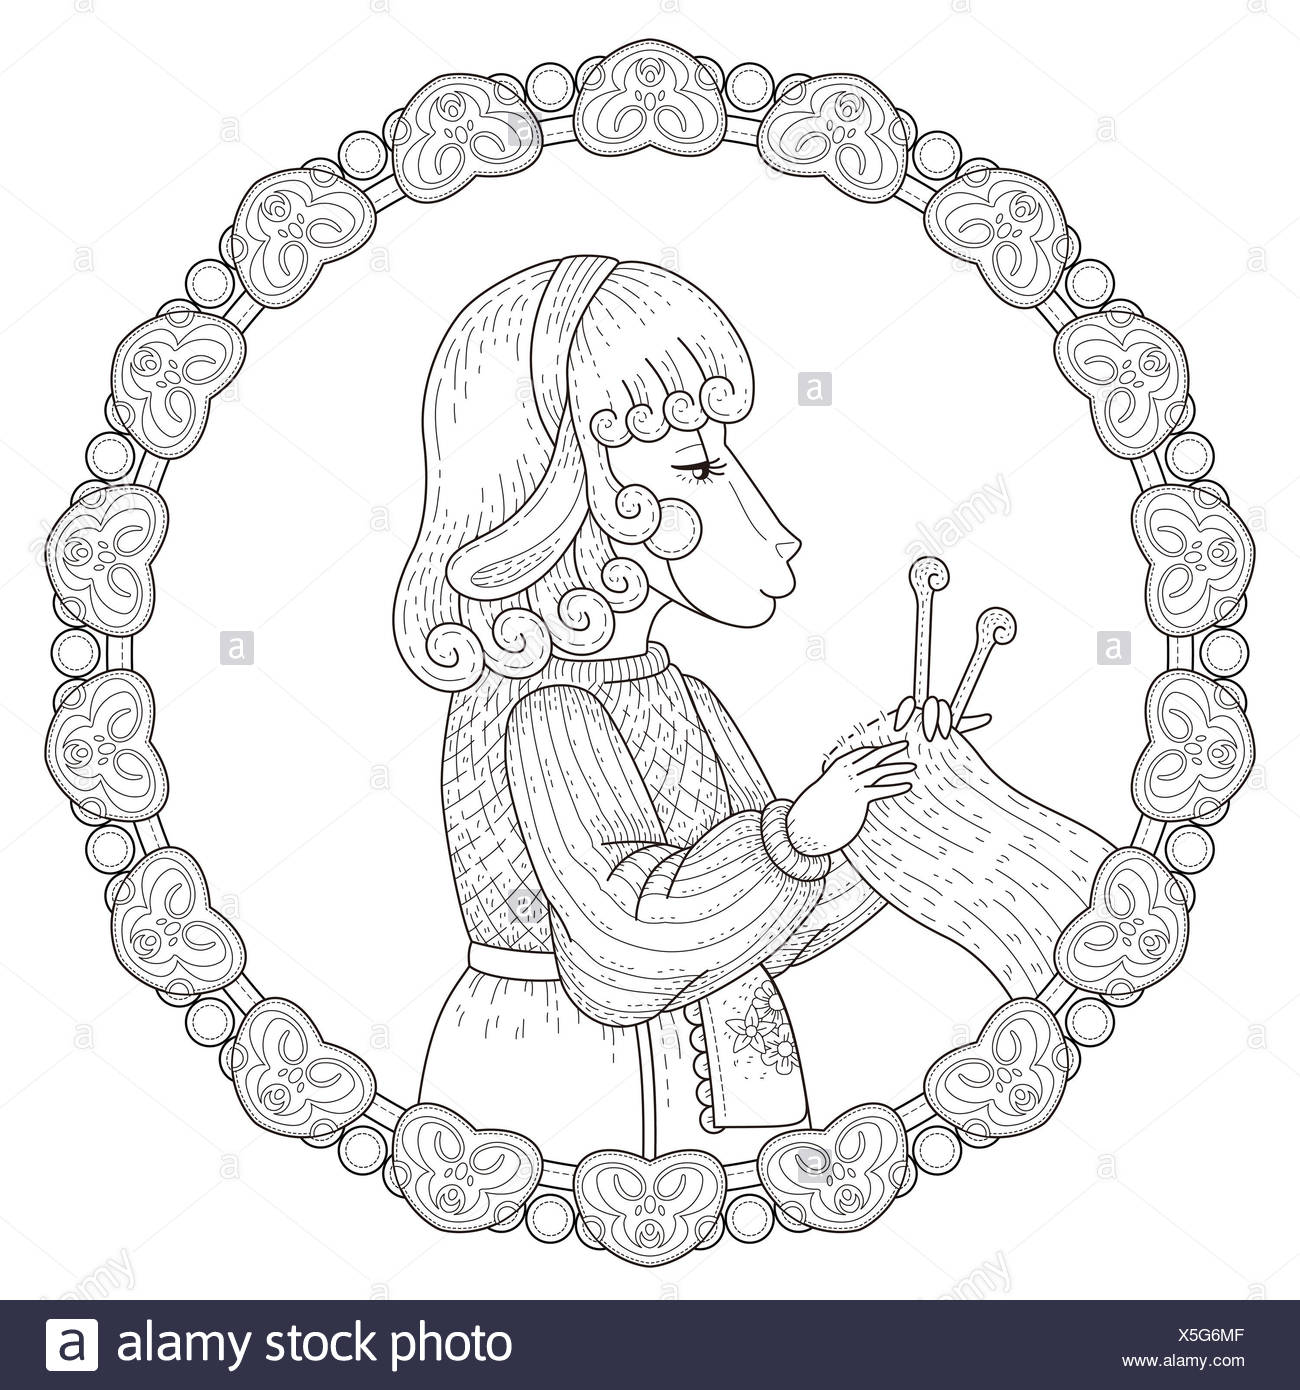 adorable sheep coloring page with floral elements in exquisite line ...